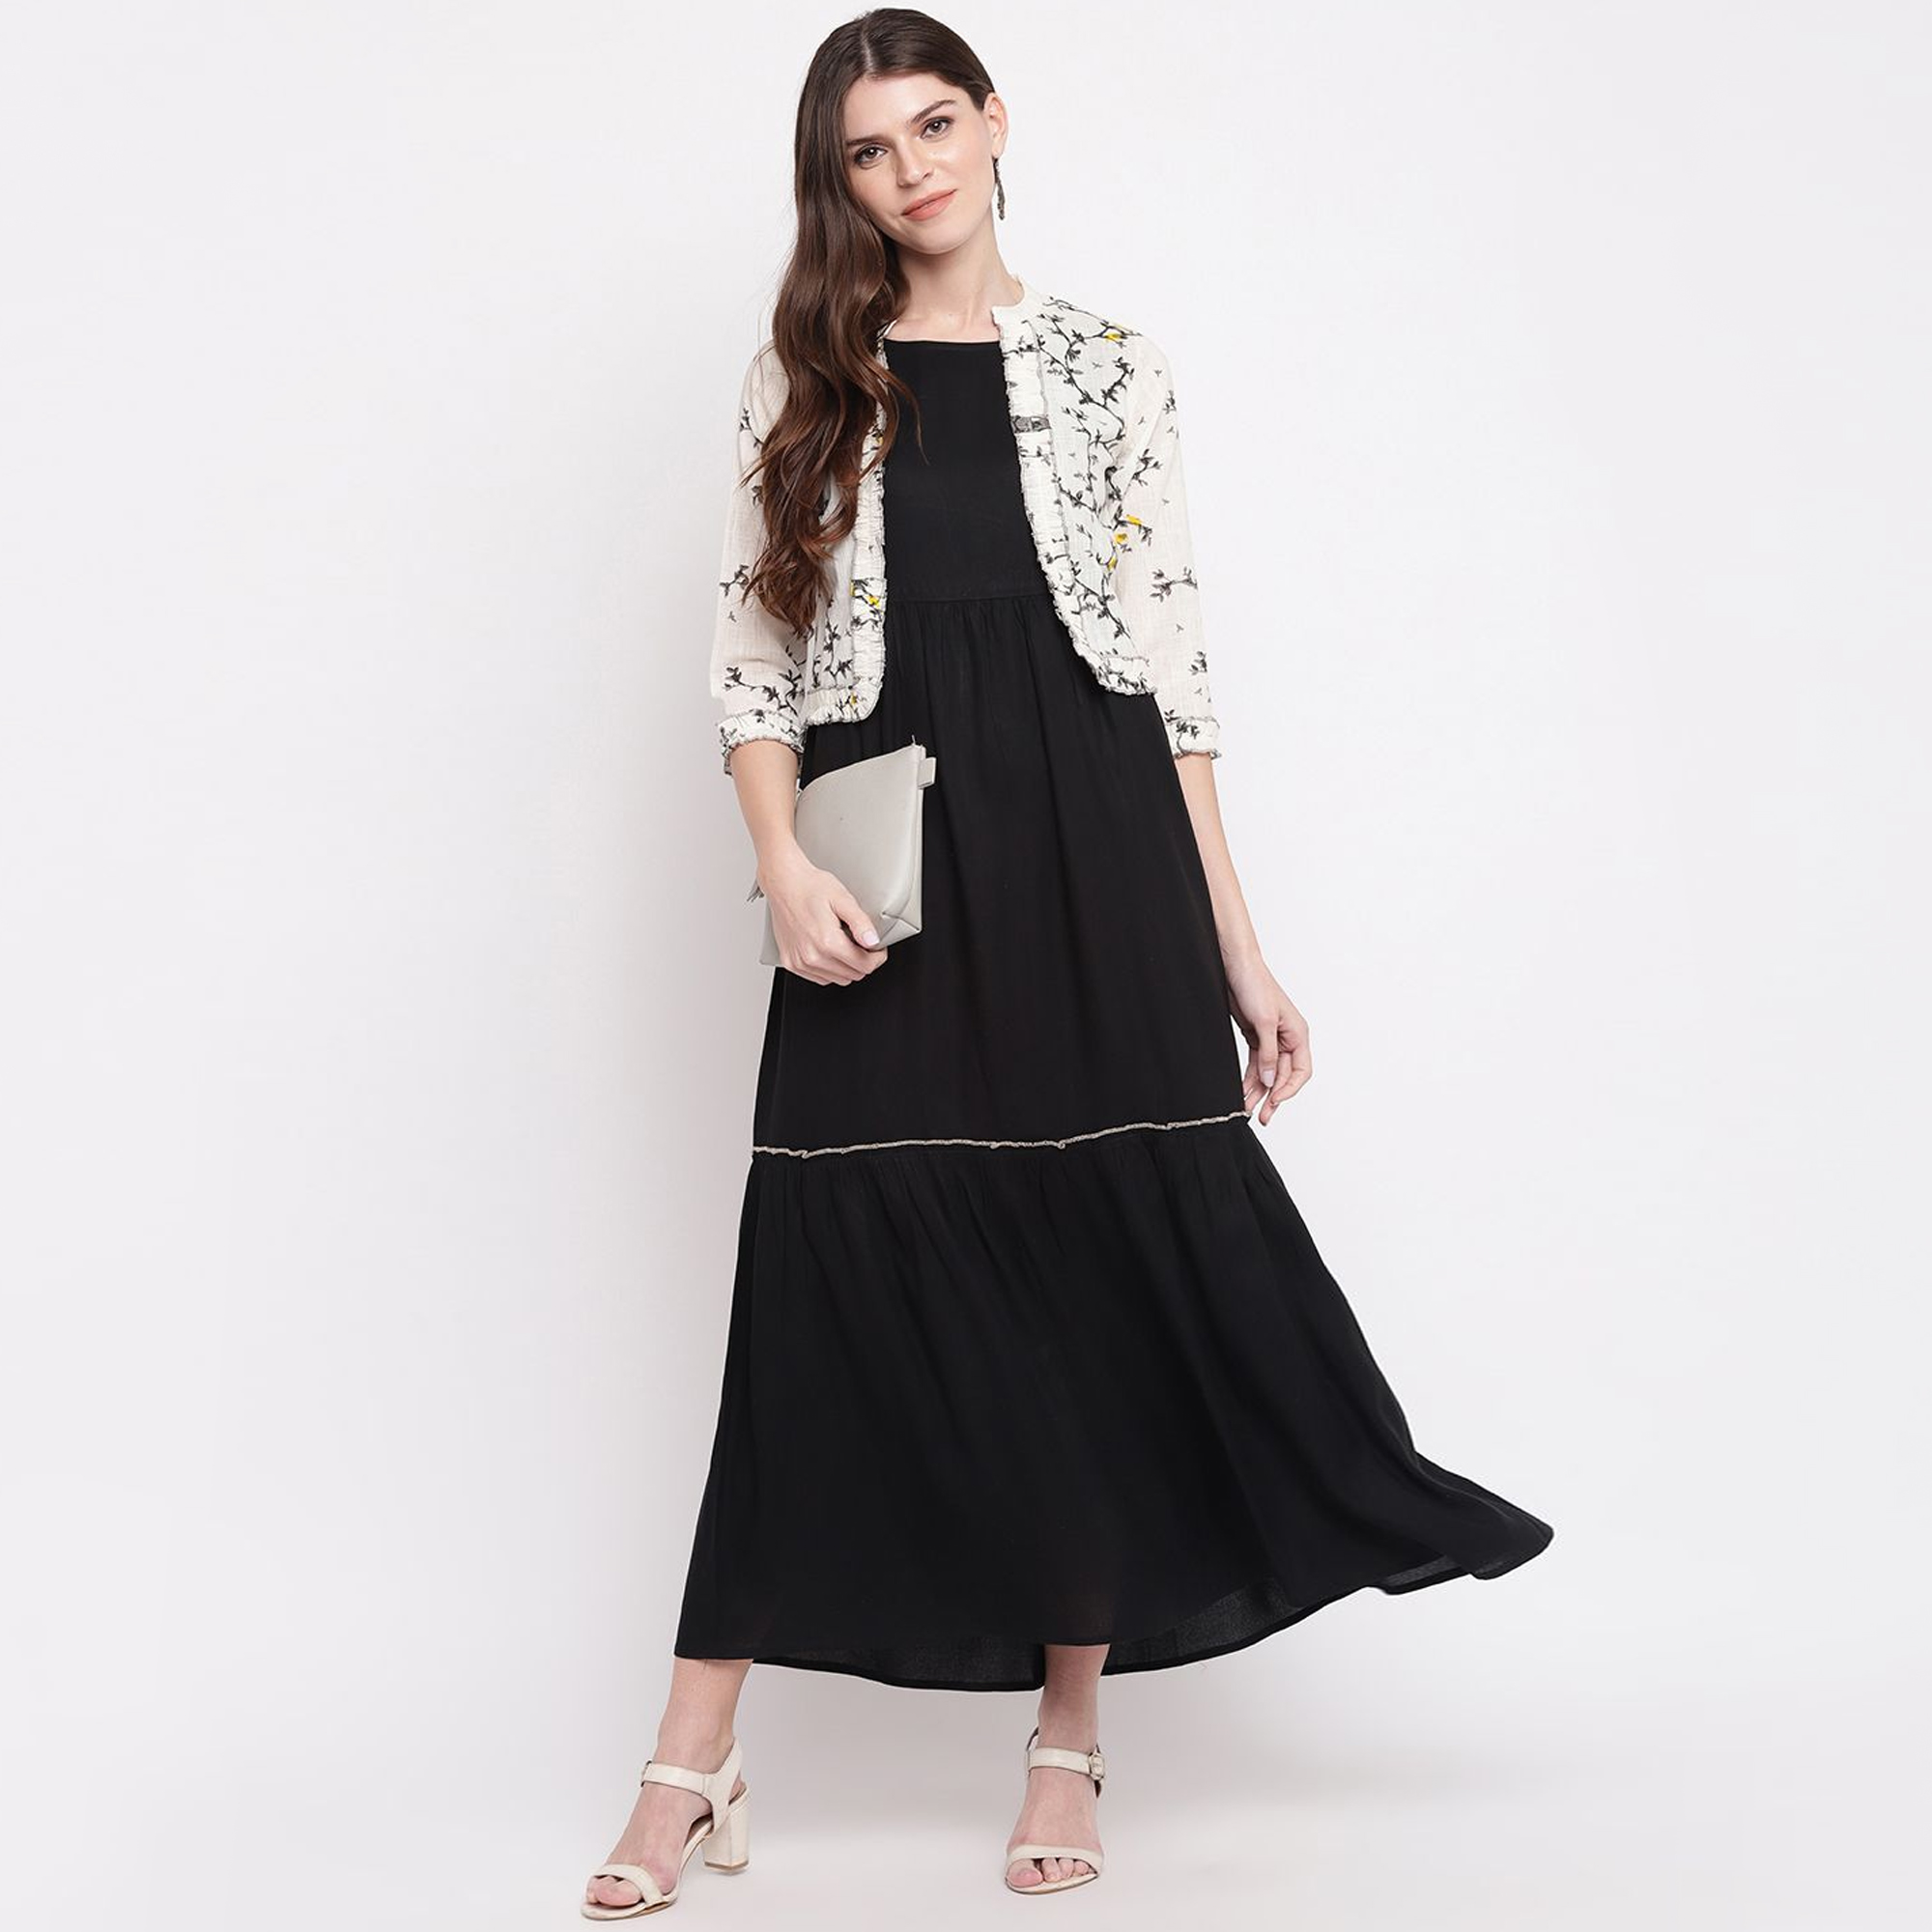 Glowing Black Colored Casual Wear Printed Ankle Length Cotton Blend Kurti With Jacket